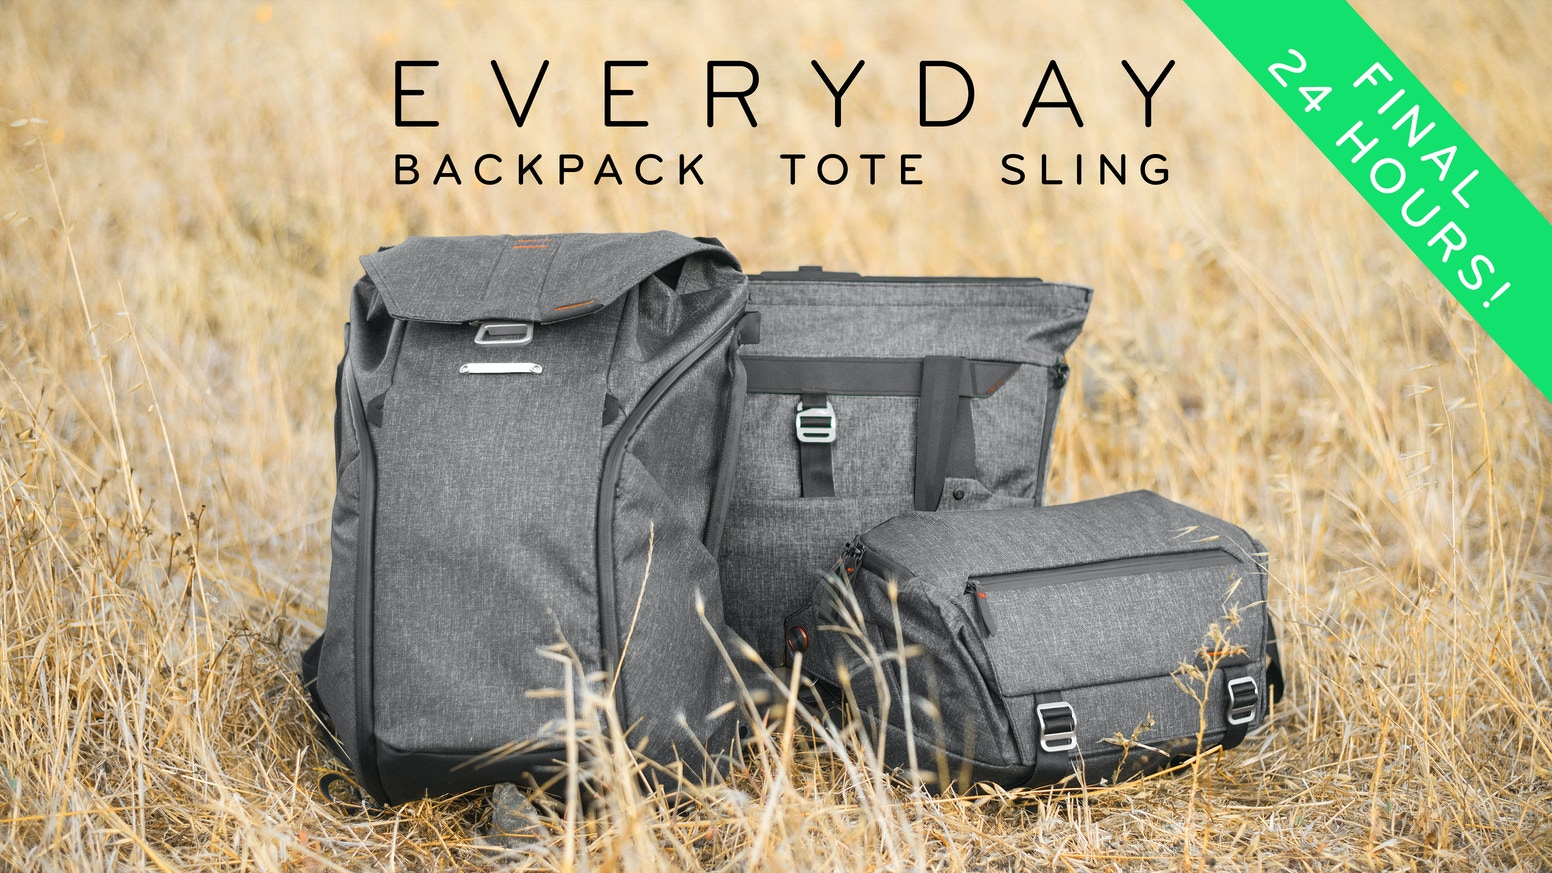 The World S Best Everyday Bags Designed By Photographers To Revolutionize Camera Carry But Built